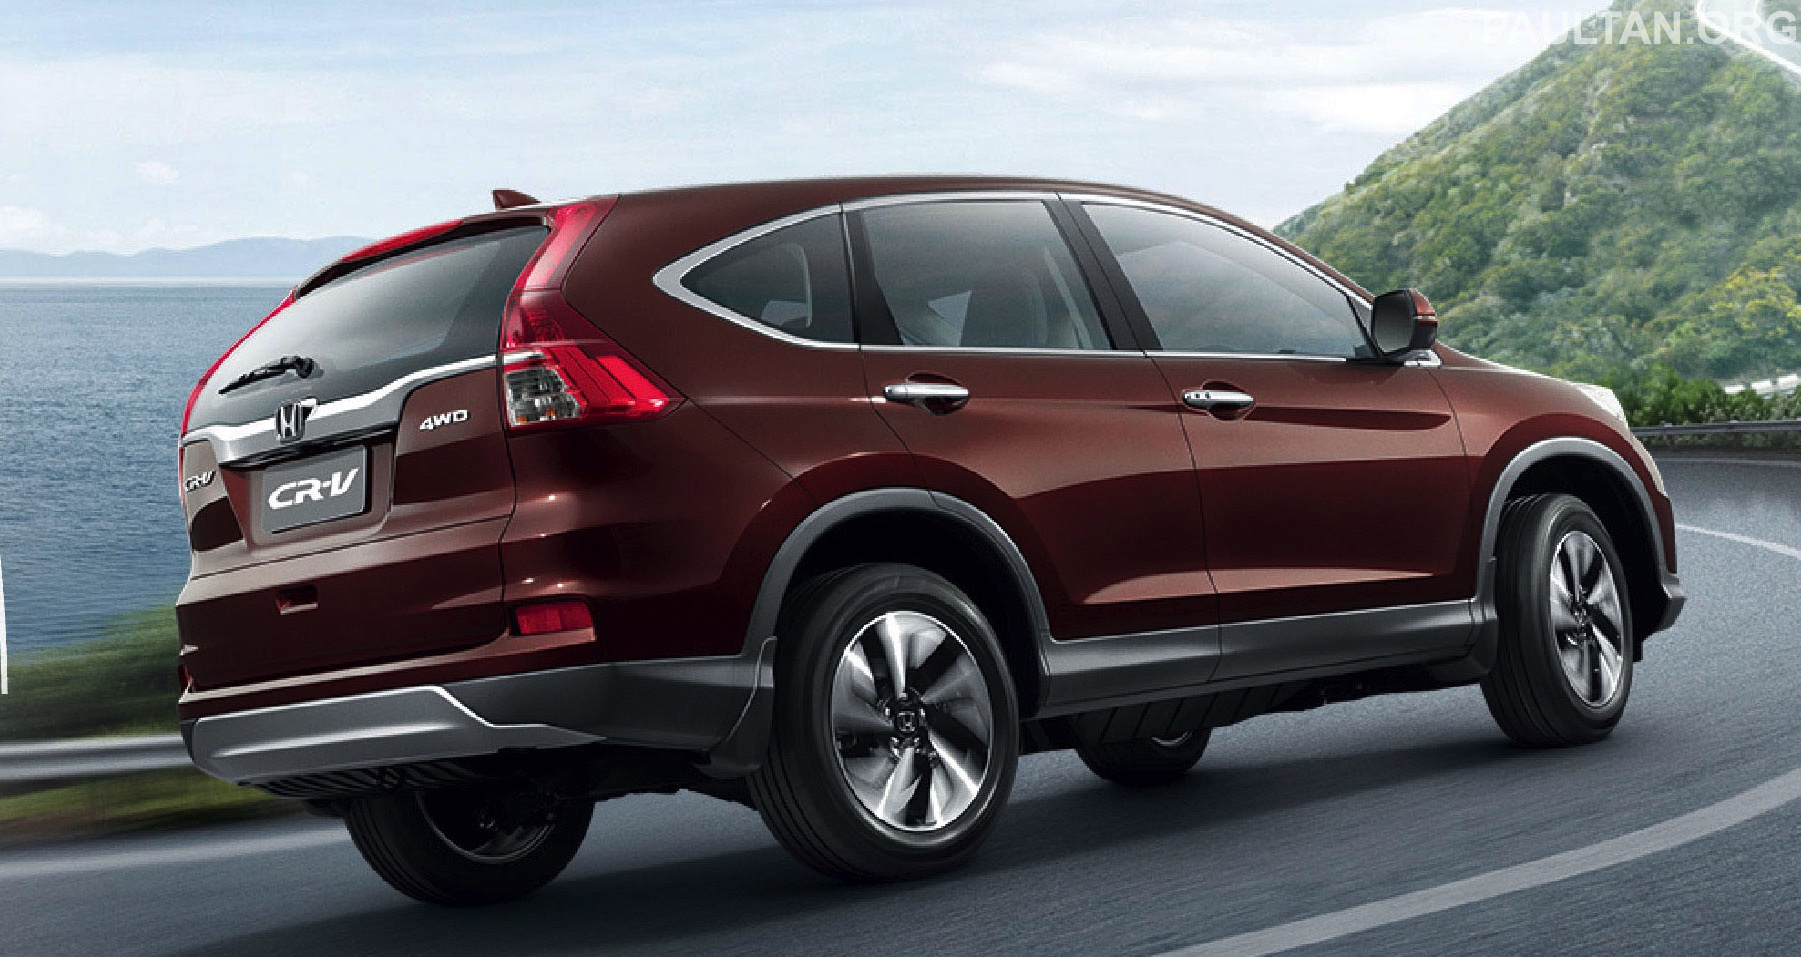 2015 Honda Cr V Facelift Asean Version Unveiled In Thailand   Review